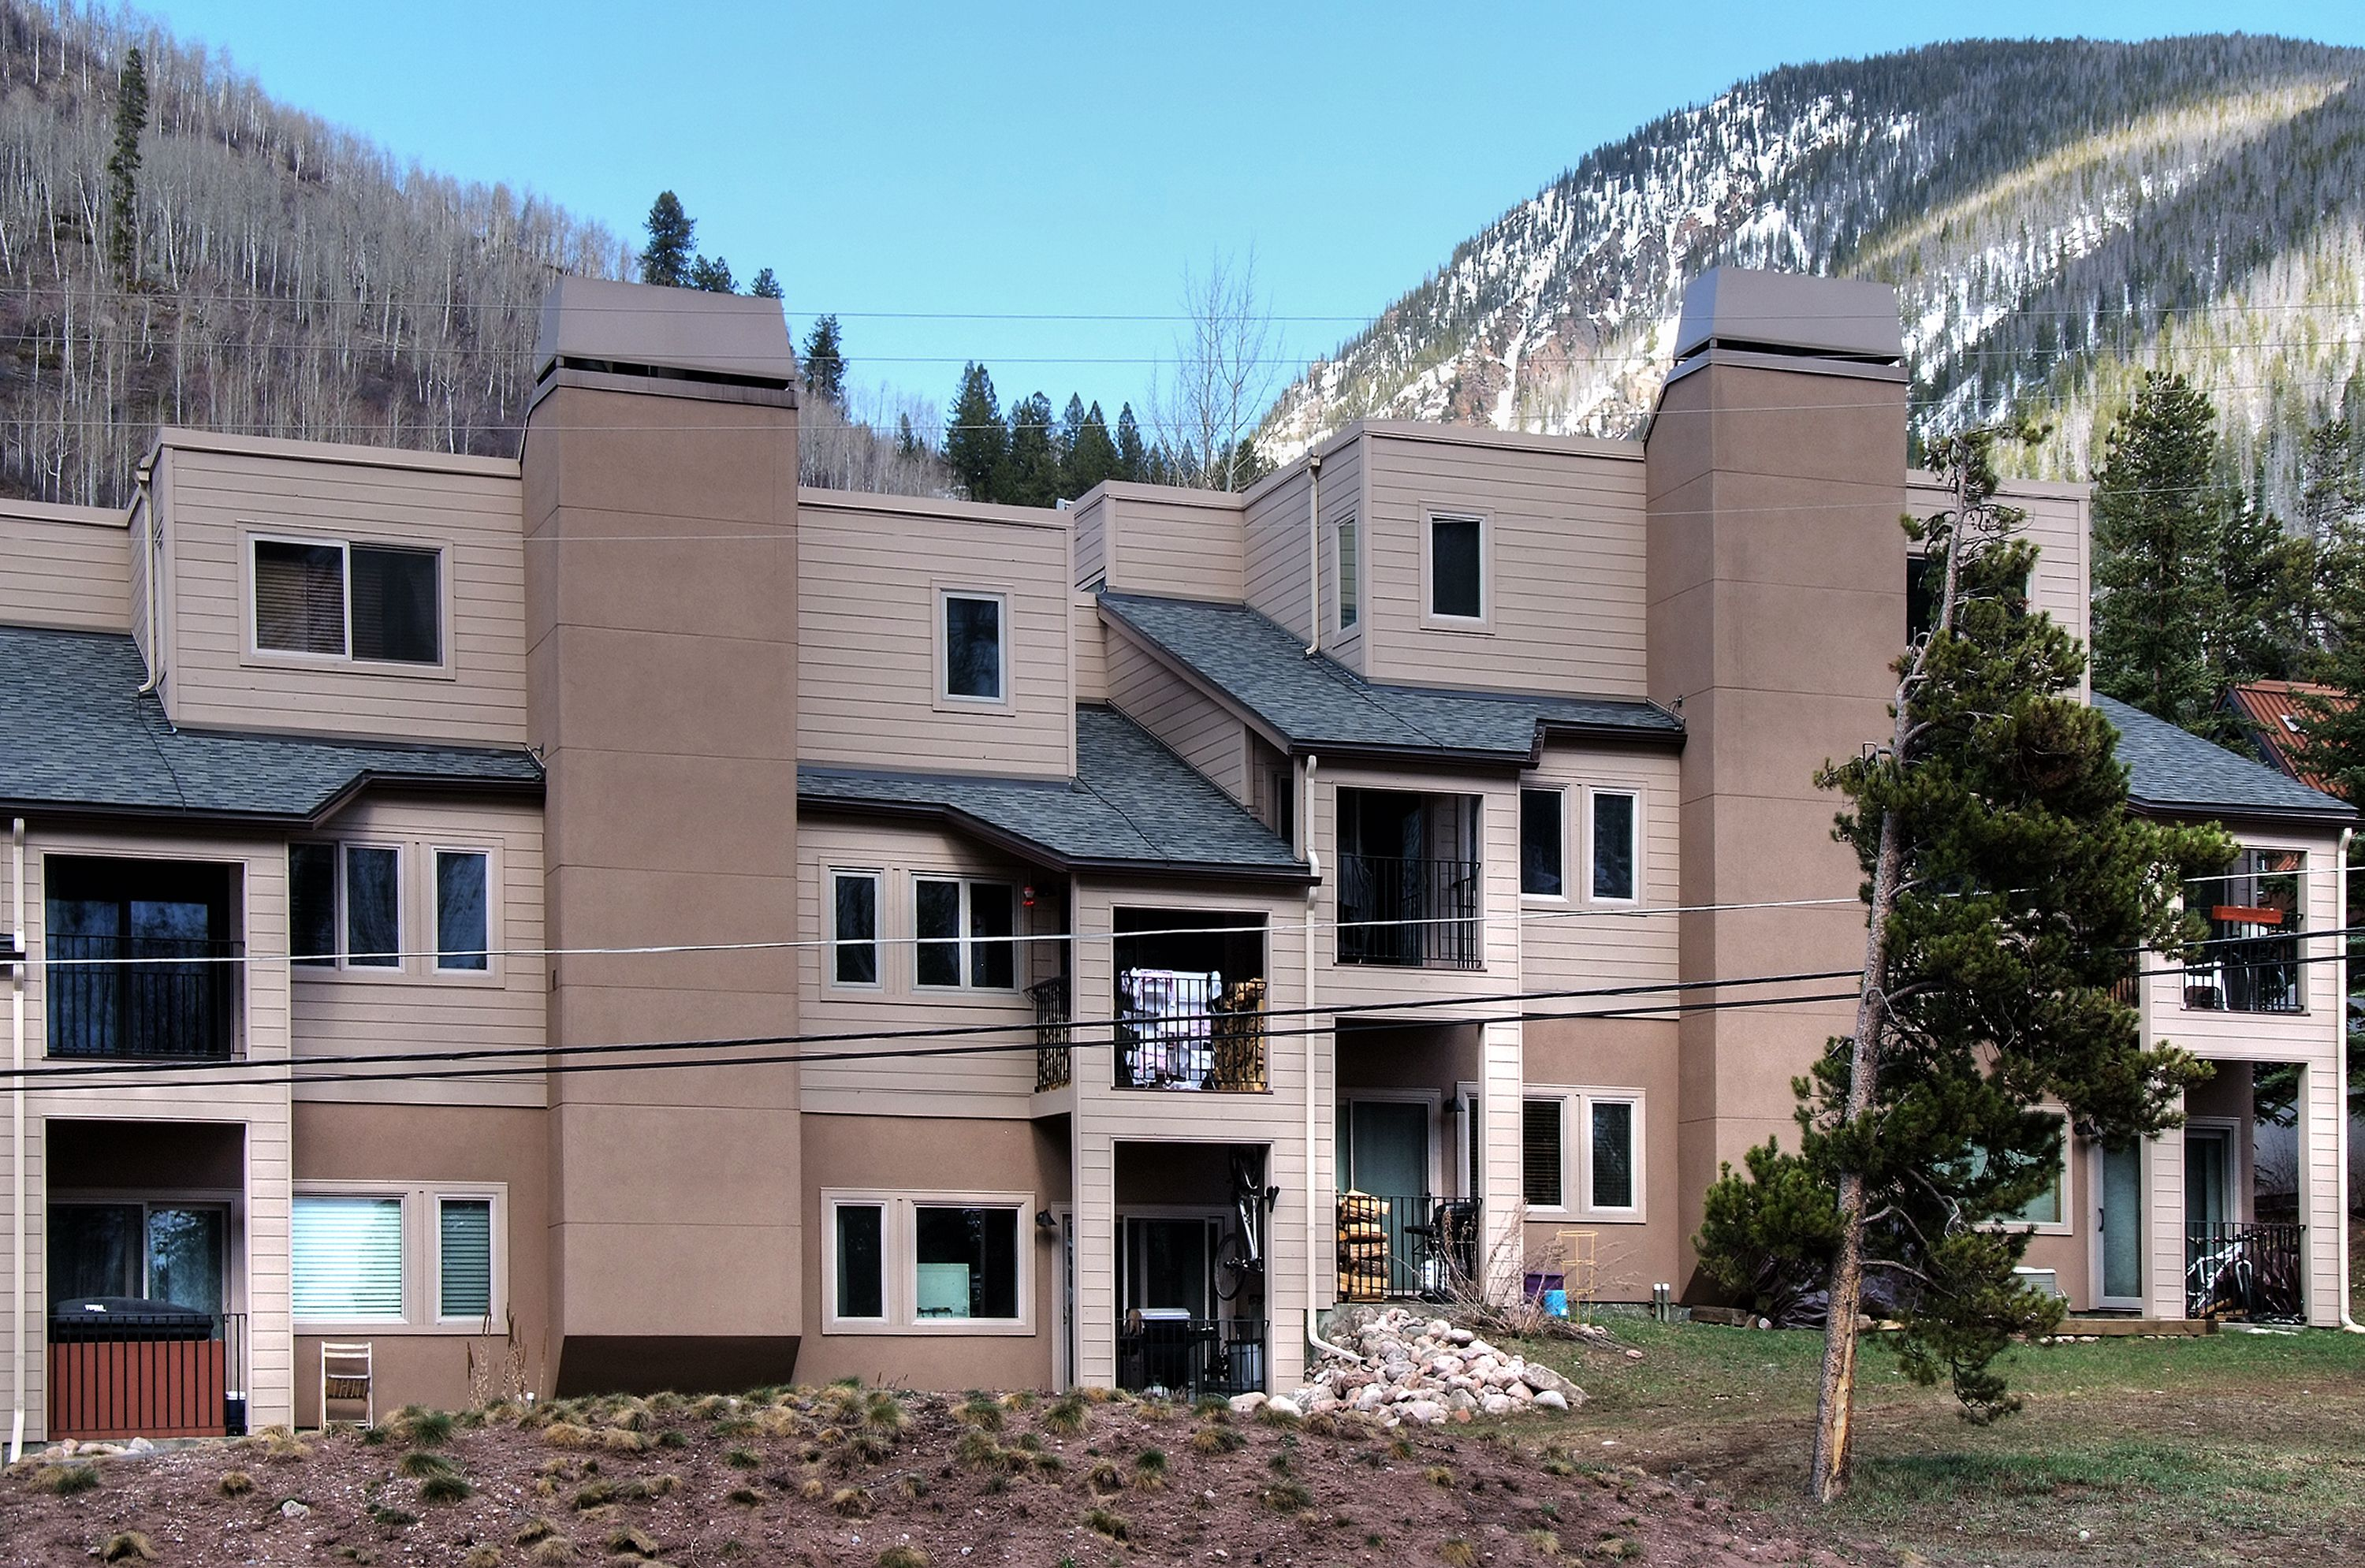 4192 Spruce Way # 112A Vail, CO 81658